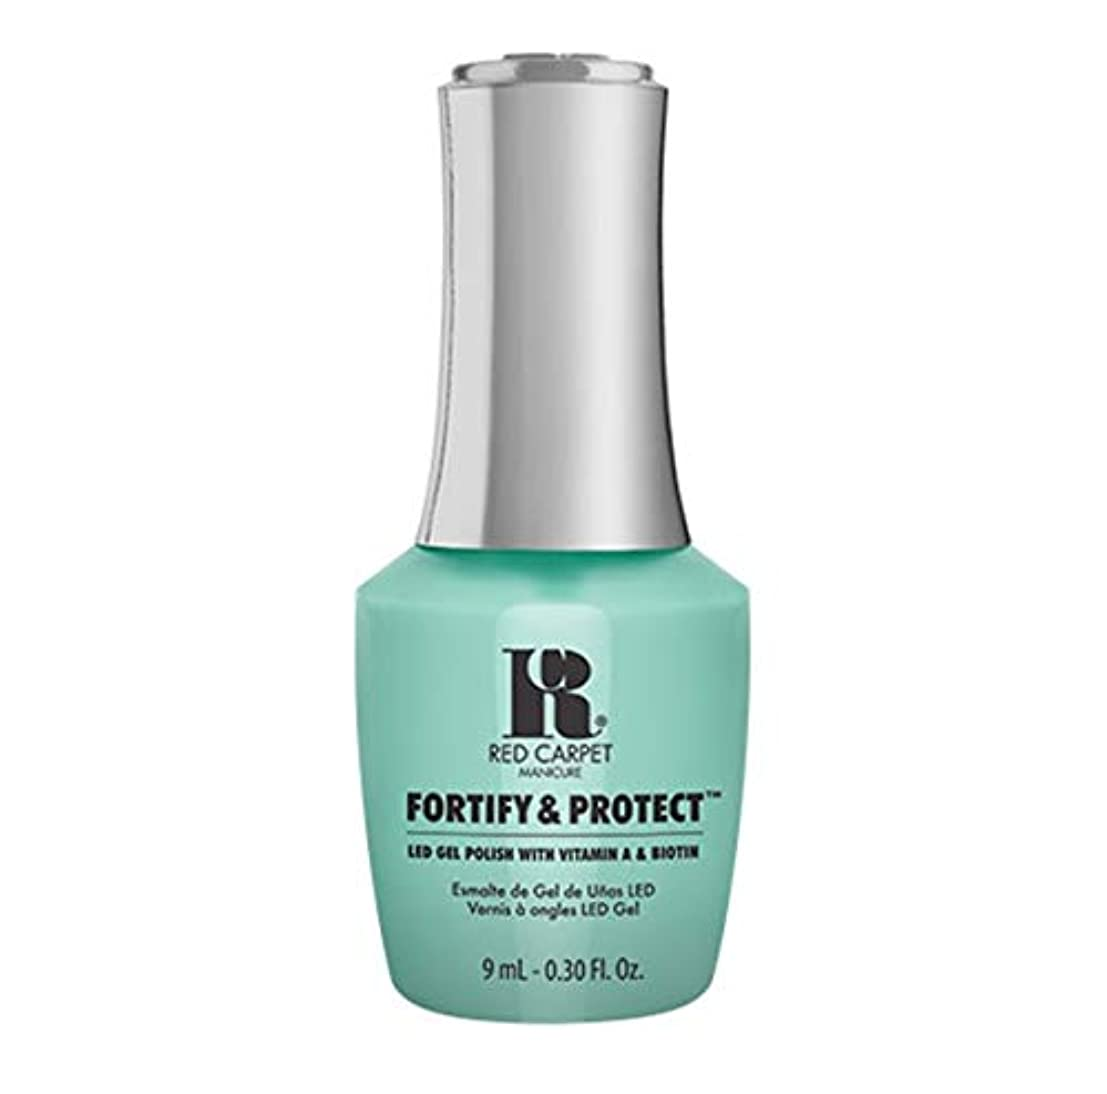 ご予約適合するホイールRed Carpet Manicure - Fortify & Protect - Front And Center - 9ml / 0.30oz